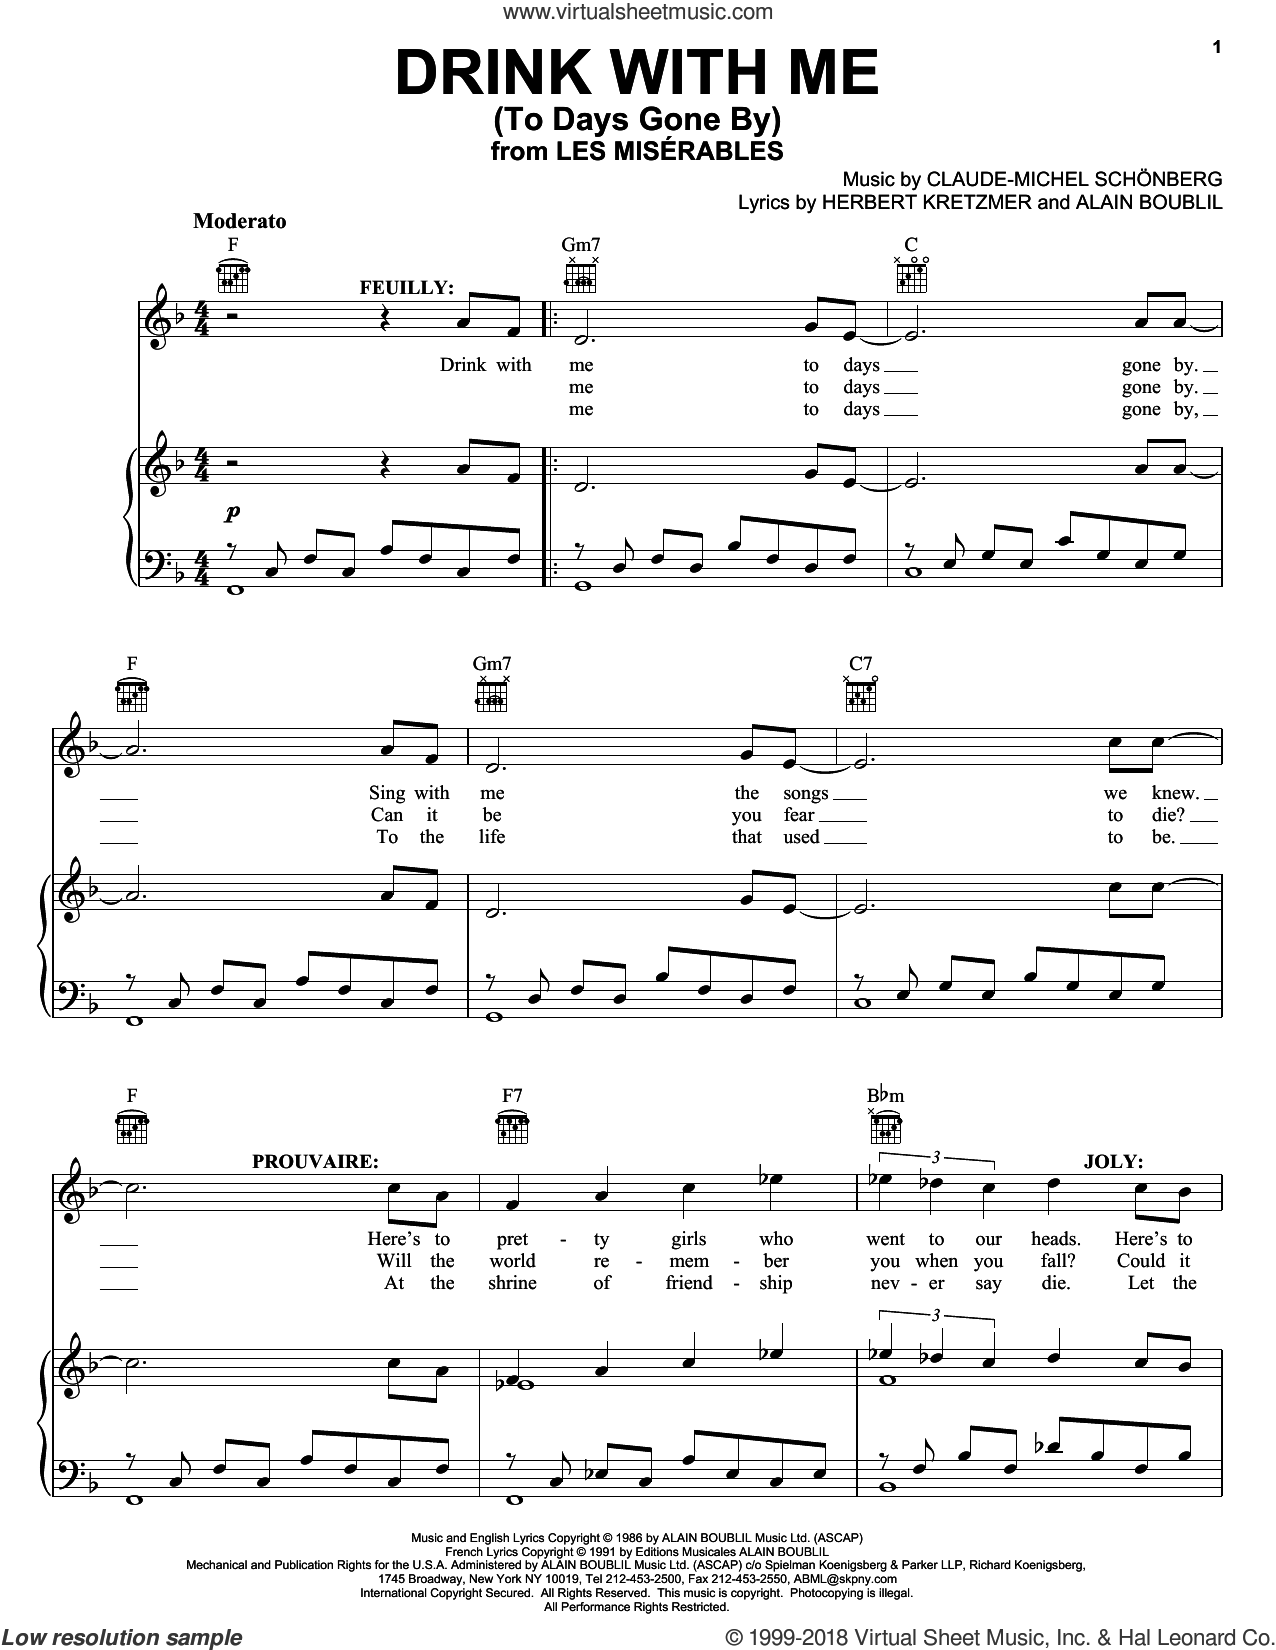 Drink With Me (To Days Gone By) sheet music for voice, piano or guitar by Herbert Kretzmer